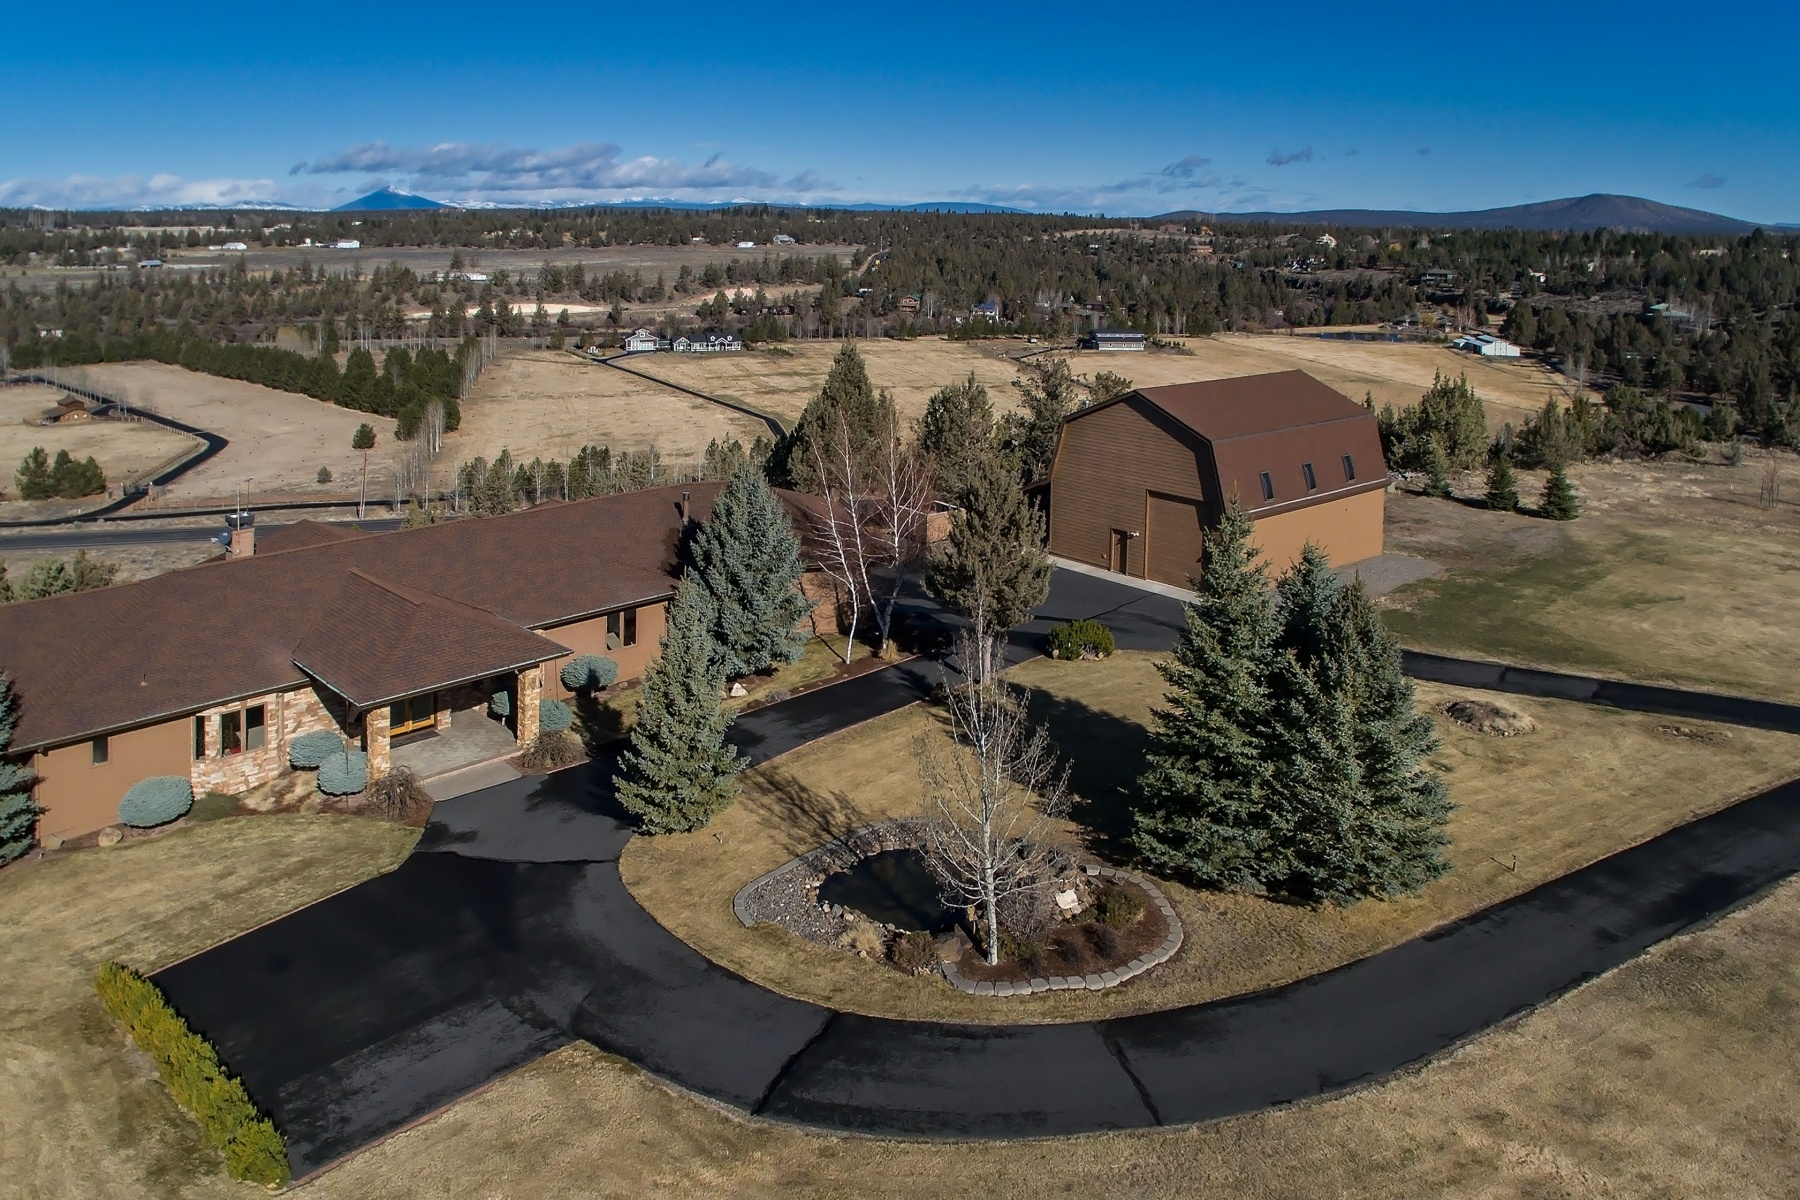 Moradia para Venda às Panoramic Mountain Views $1,197,000 20150 Winston Loop Bend, Oregon, 97701 Estados Unidos